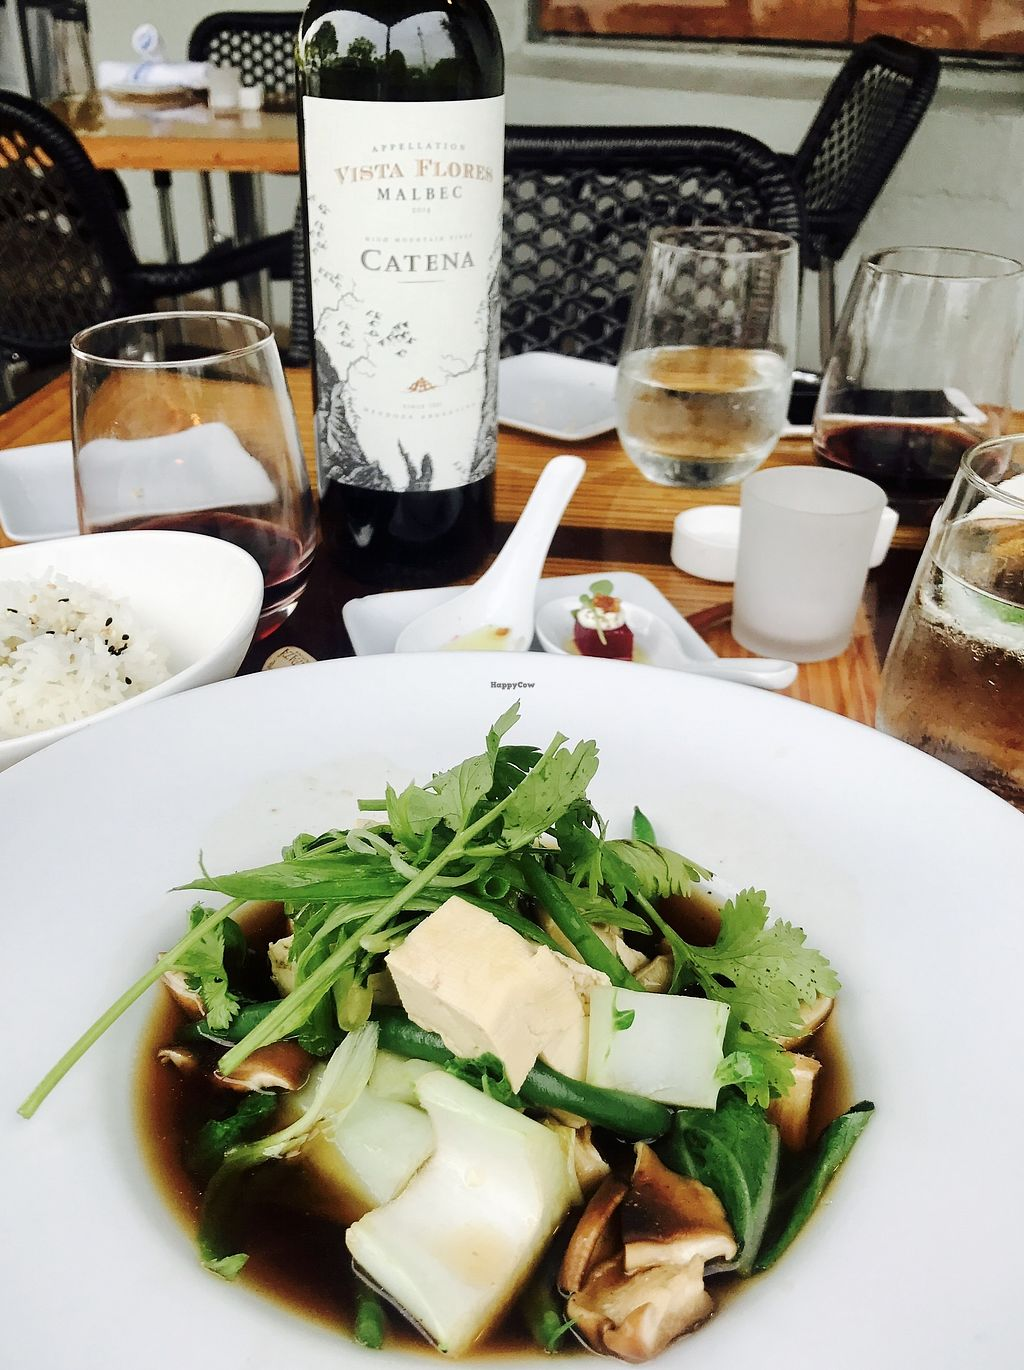 """Photo of Hardy Park Bistro  by <a href=""""/members/profile/JolantaThorburn"""">JolantaThorburn</a> <br/>Chinese Master Stock with Tofu, Shiitake Bok Choy, Asparagus and Jasmine Rice <br/> July 23, 2017  - <a href='/contact/abuse/image/96882/283734'>Report</a>"""